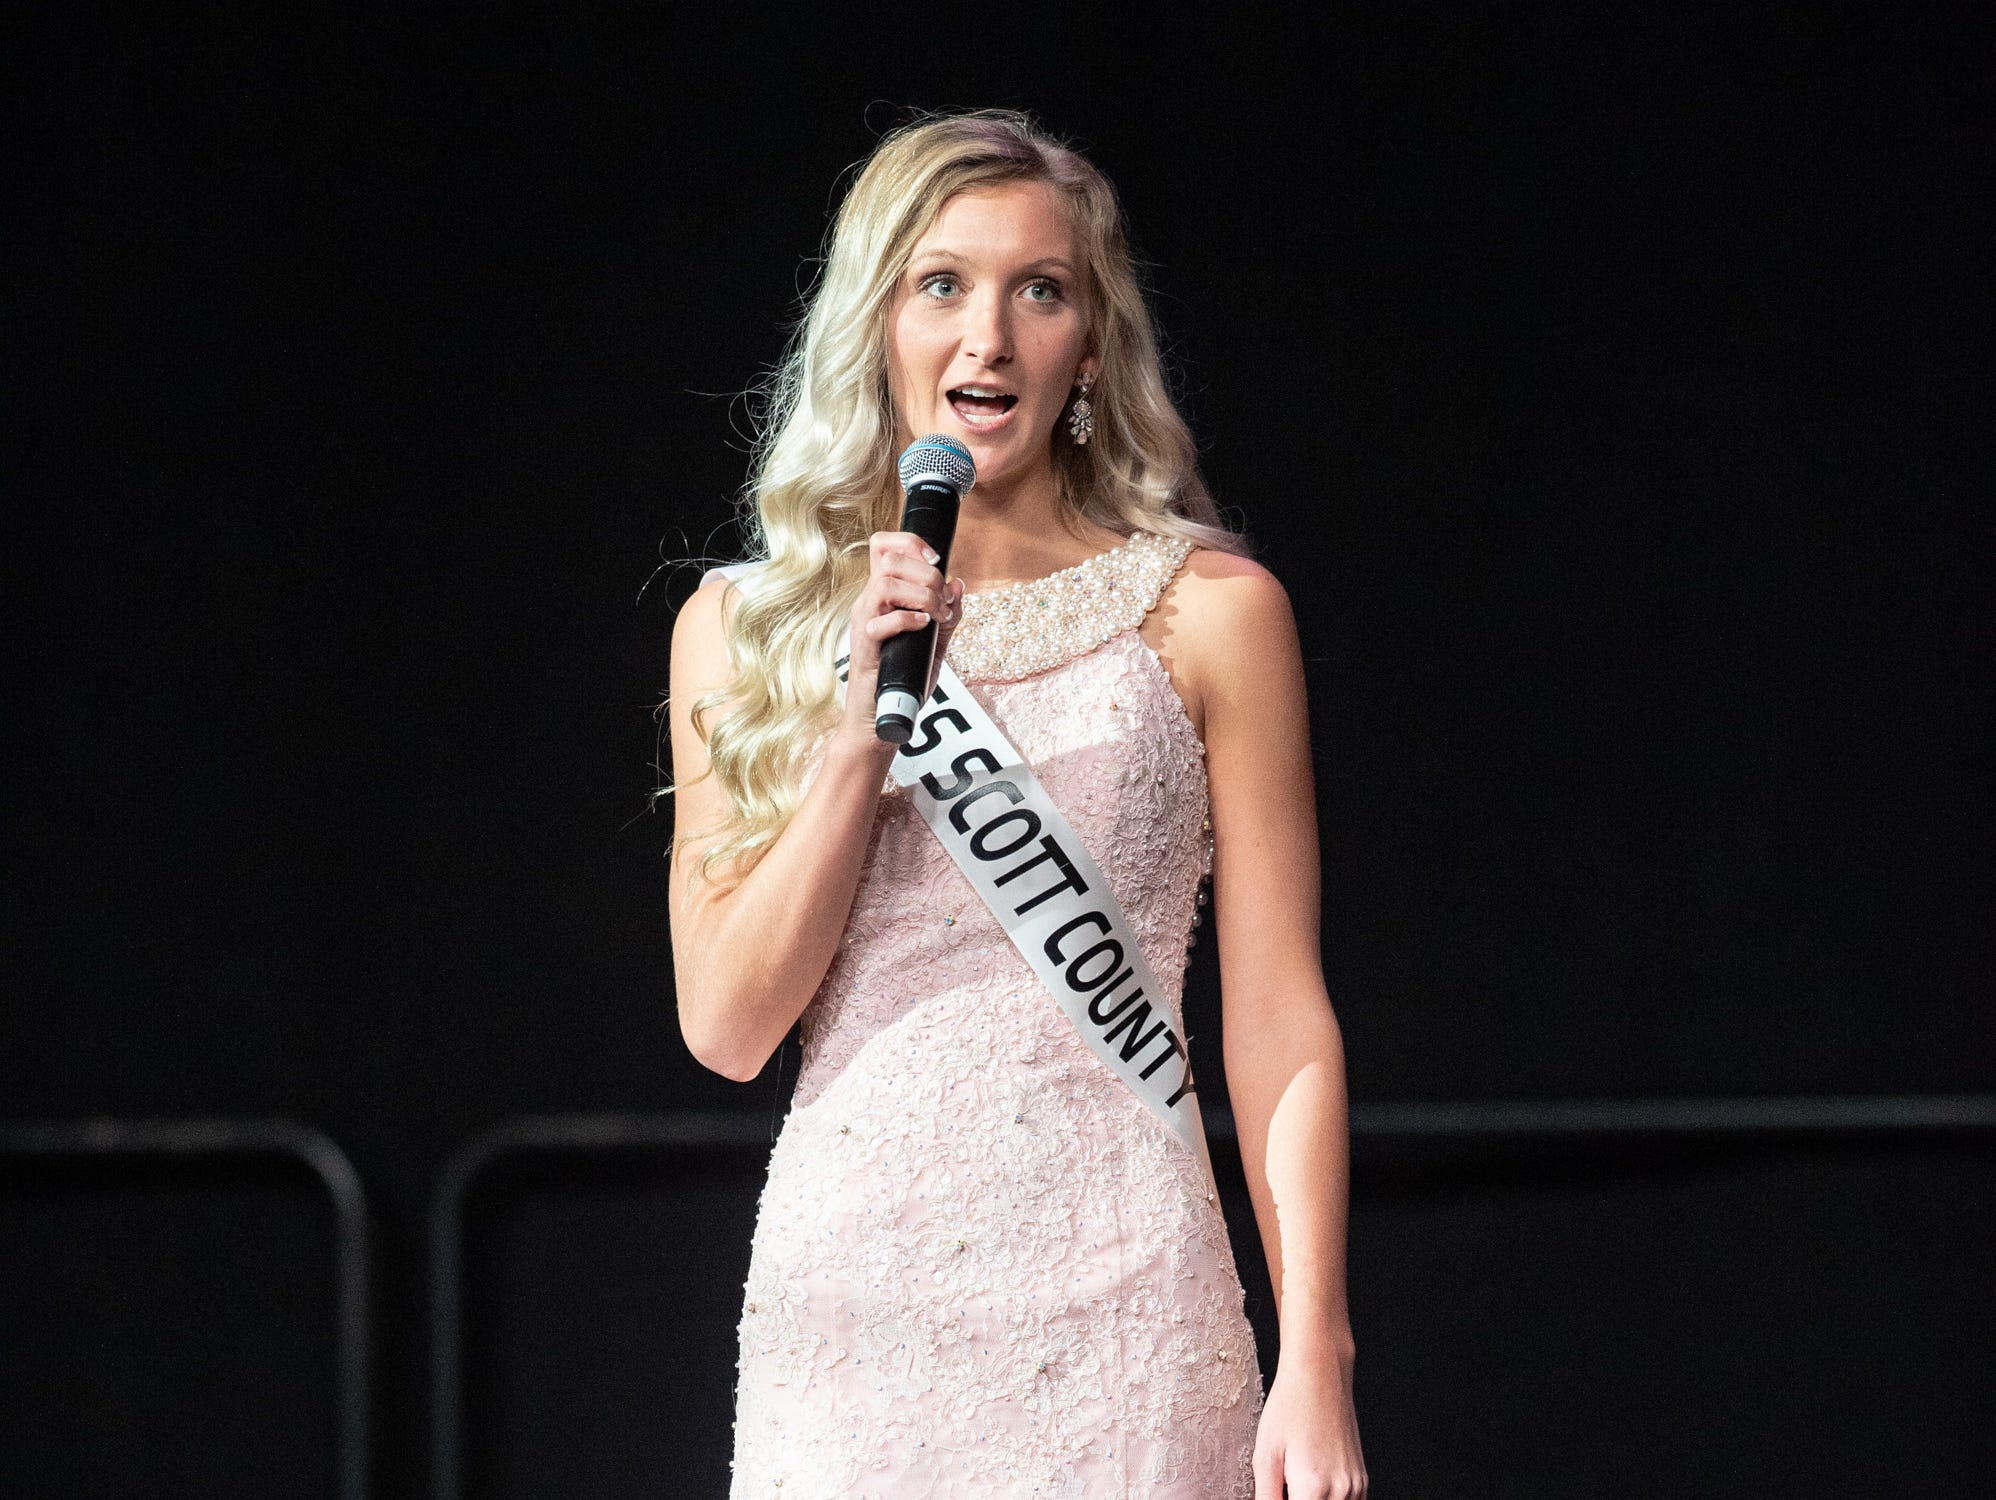 """Miss Scott County, Jesse Mays, was given the word """"powerful"""" to use in a spontaneous response during the 61st Indiana State Fair Queen Pageant at the Indiana State Fairgrounds in Indianapolis on Sunday, Jan. 6, 2019."""